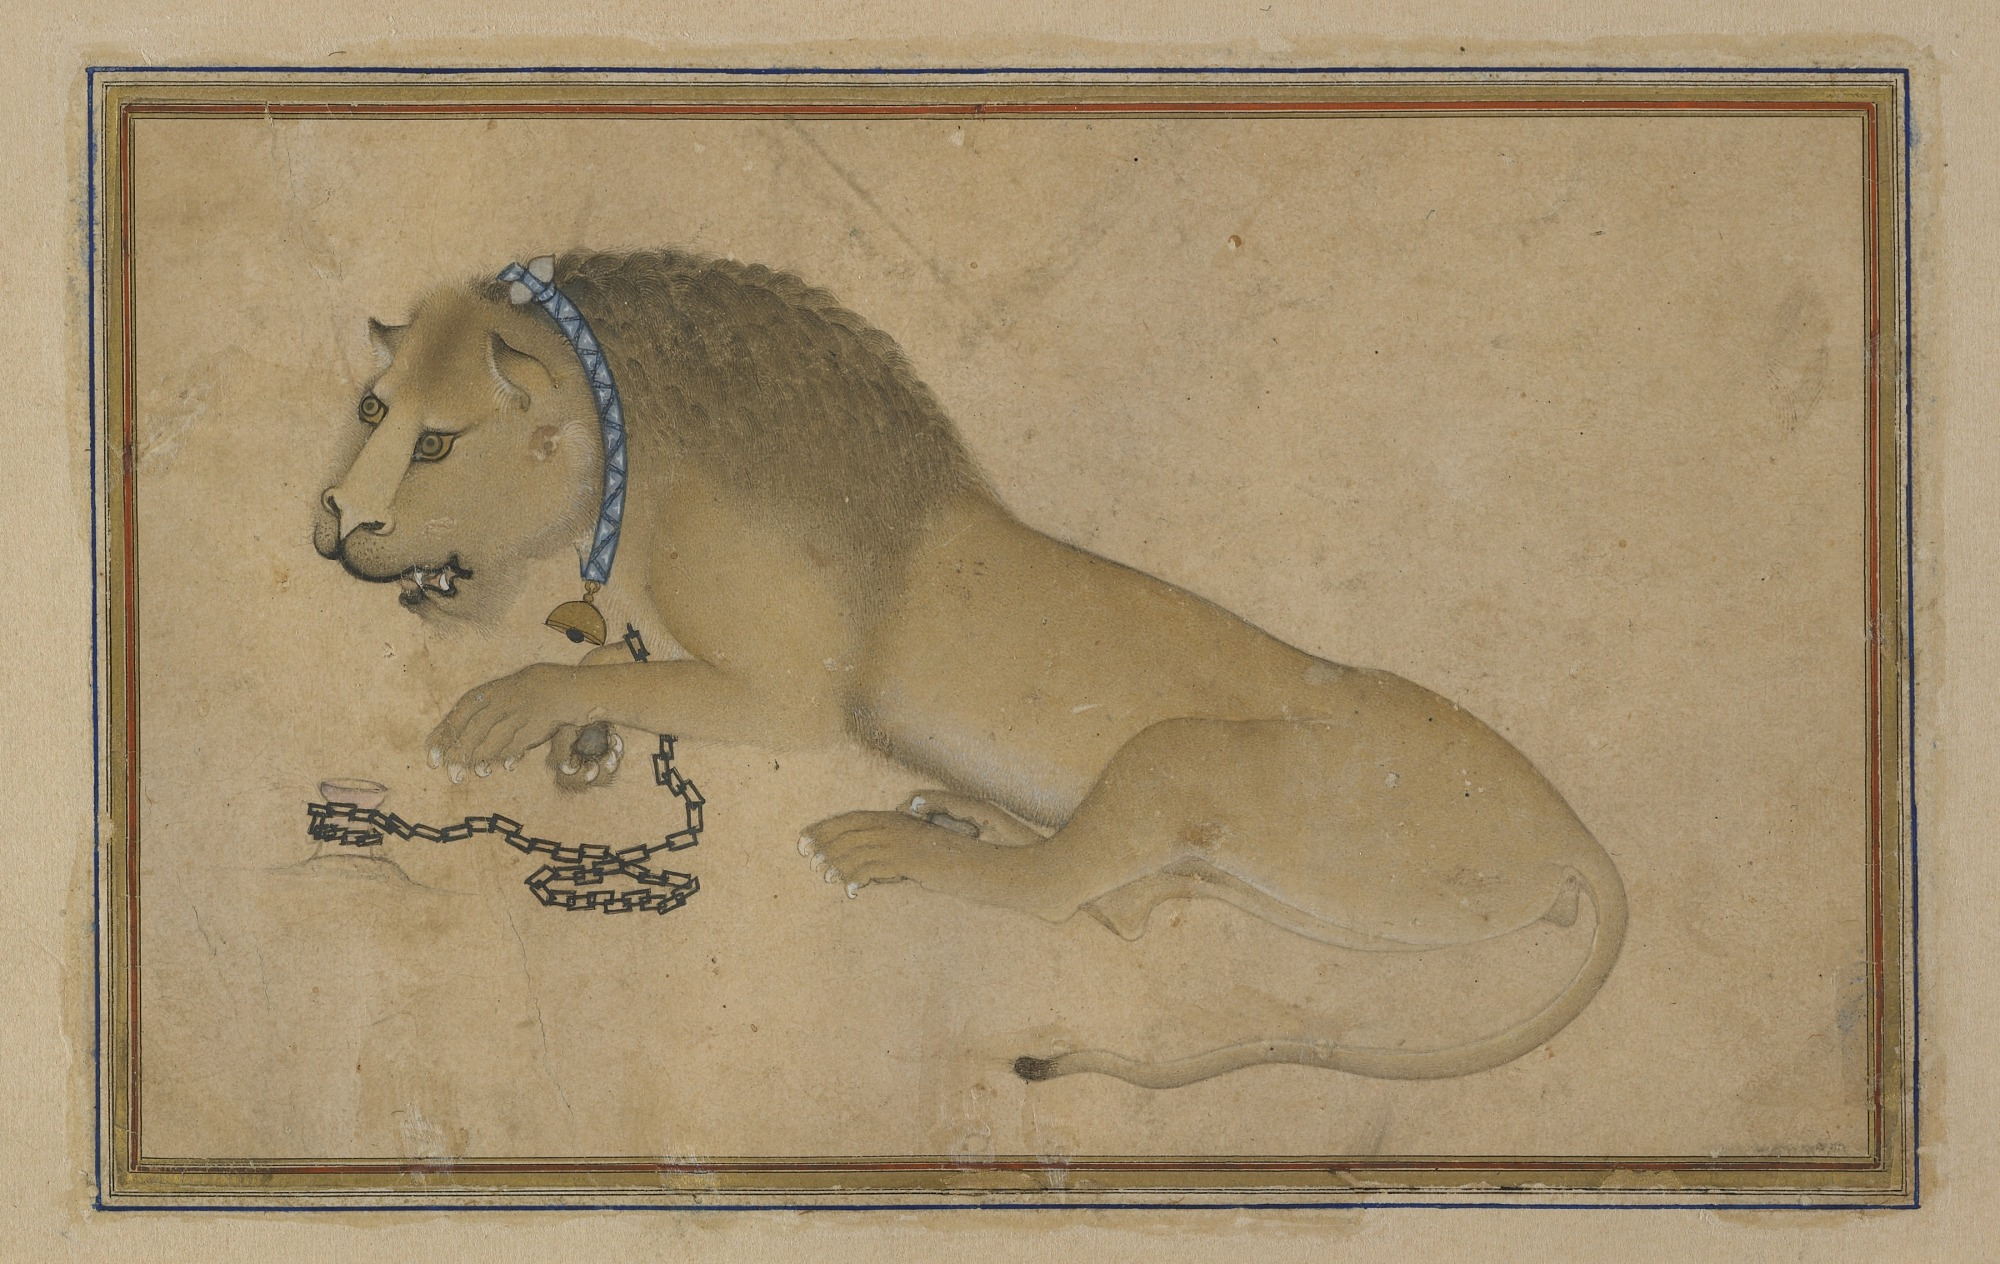 Folio from a Divan (collected poems) by Hafiz (d. 1390); recto: text; verso: Chained lion